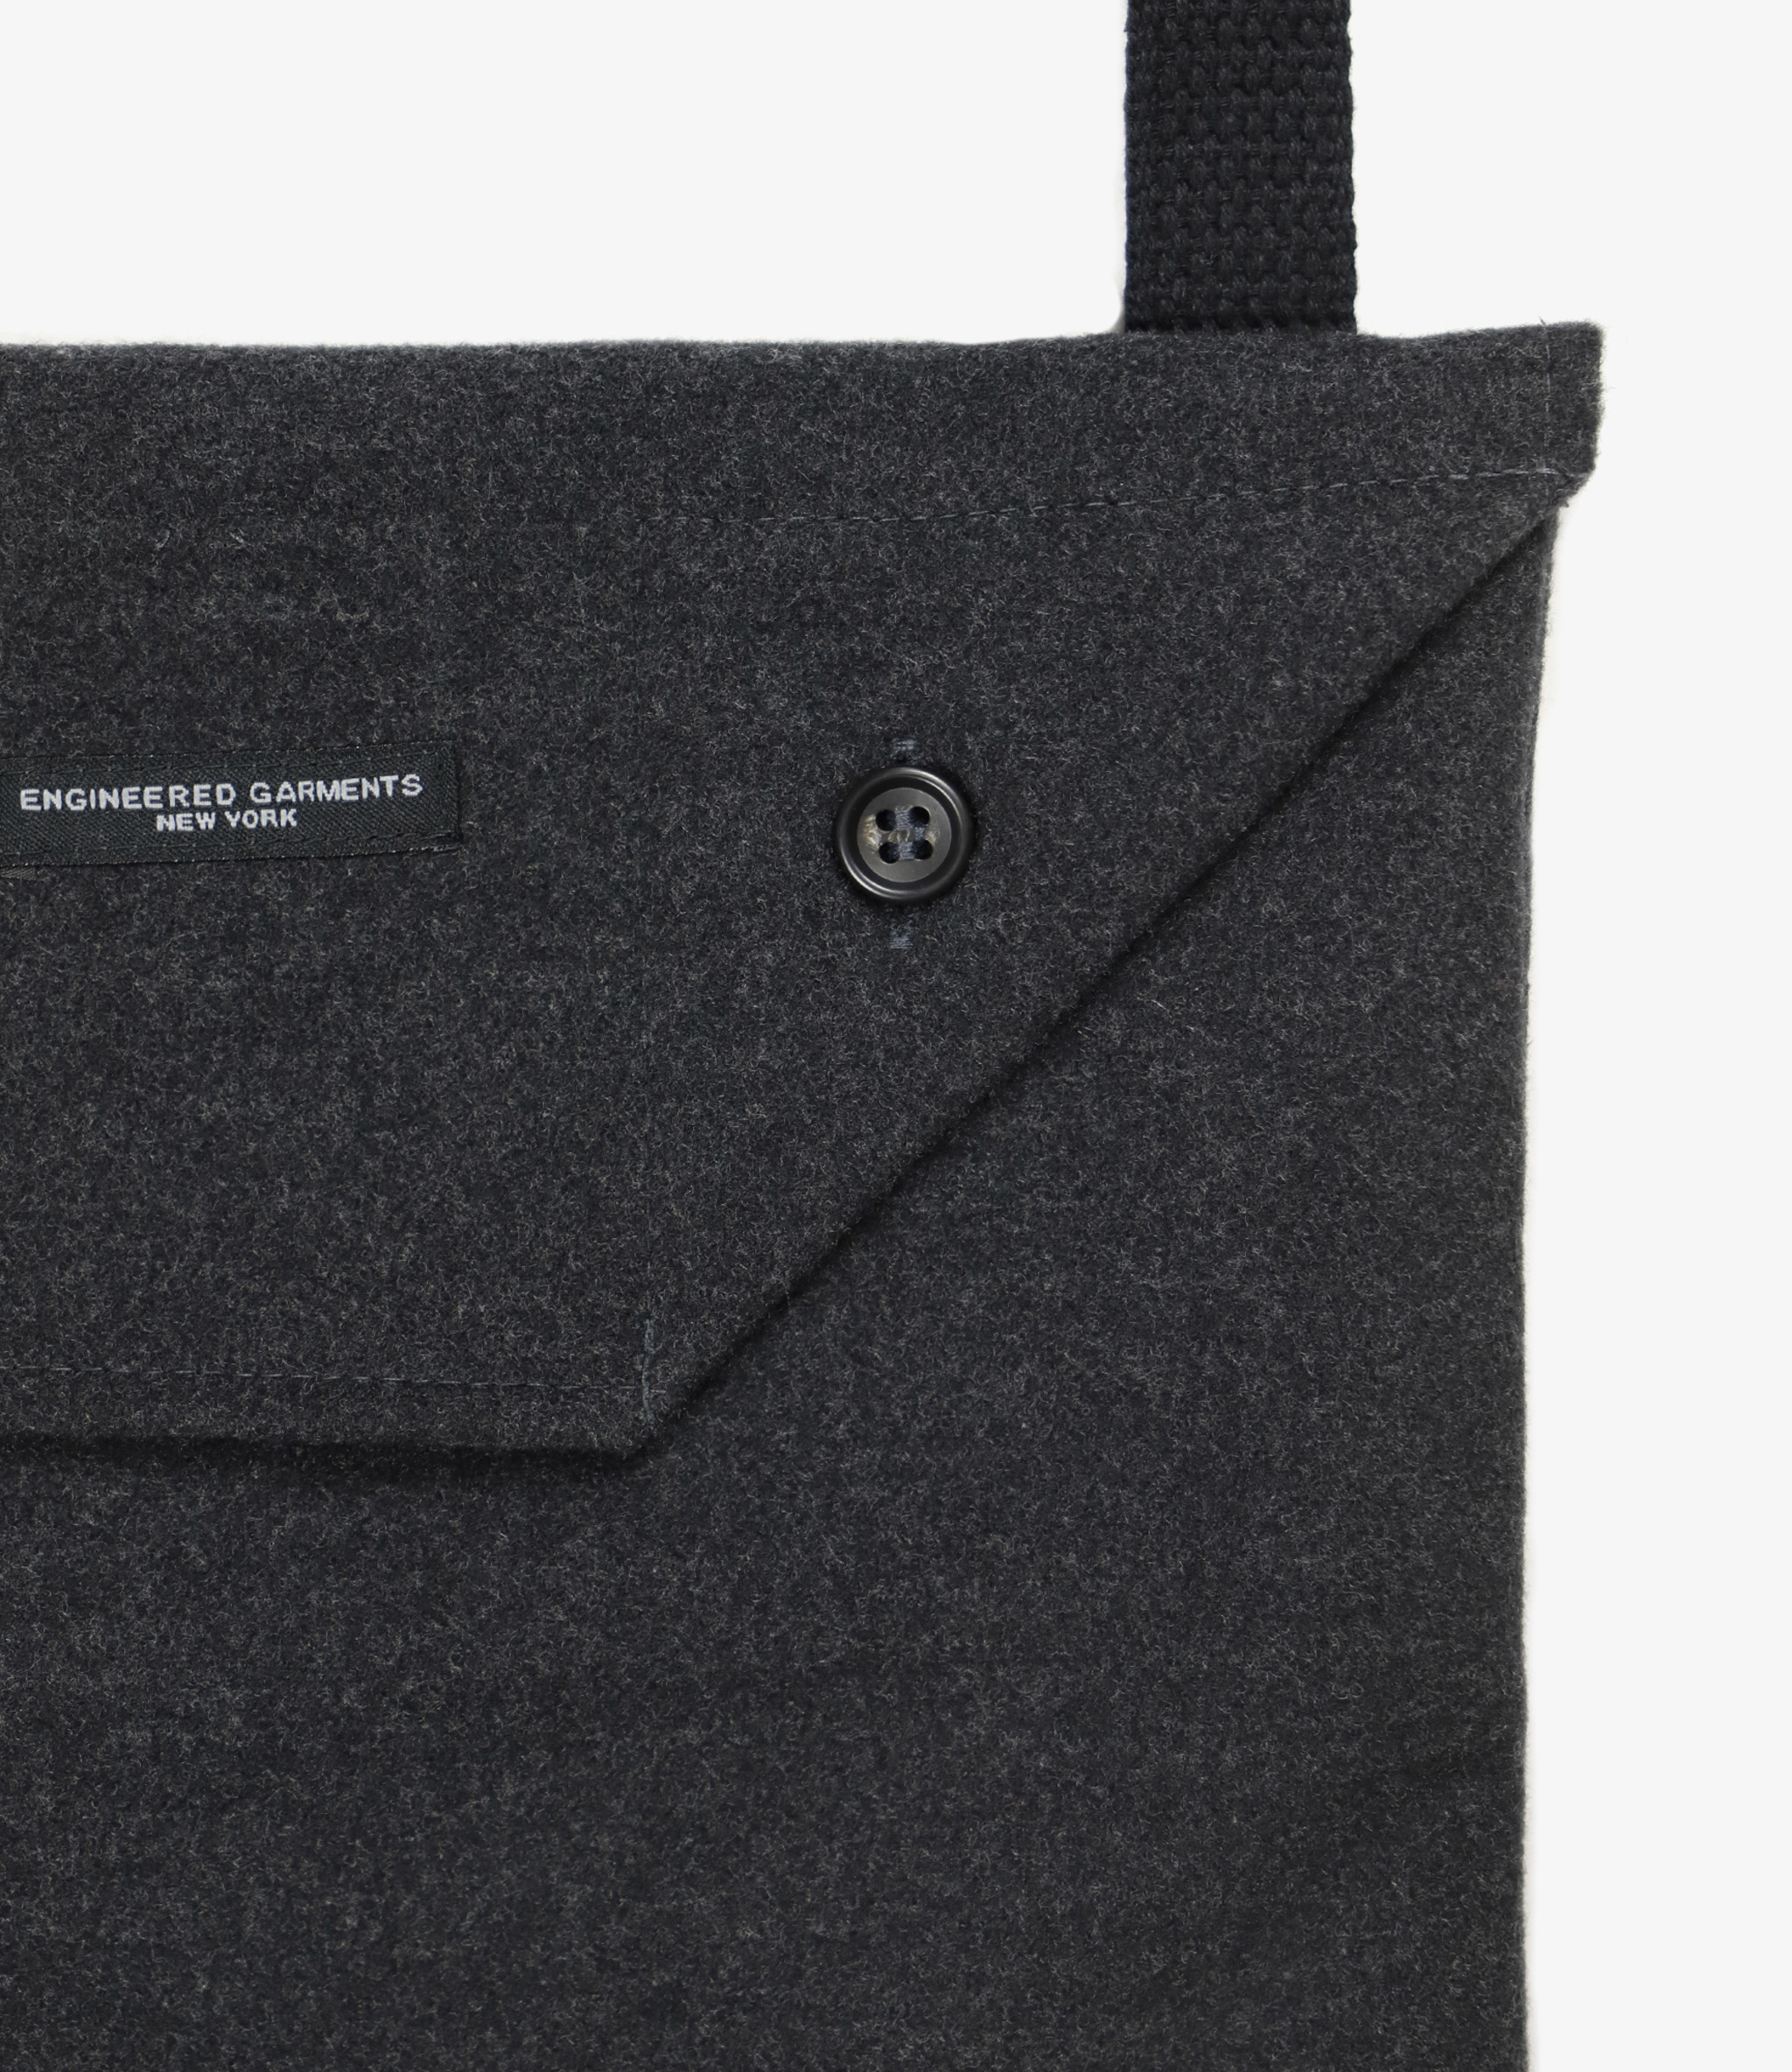 Engineered Garments Shoulder Pouch - Charcoal Polyester Fake Melton